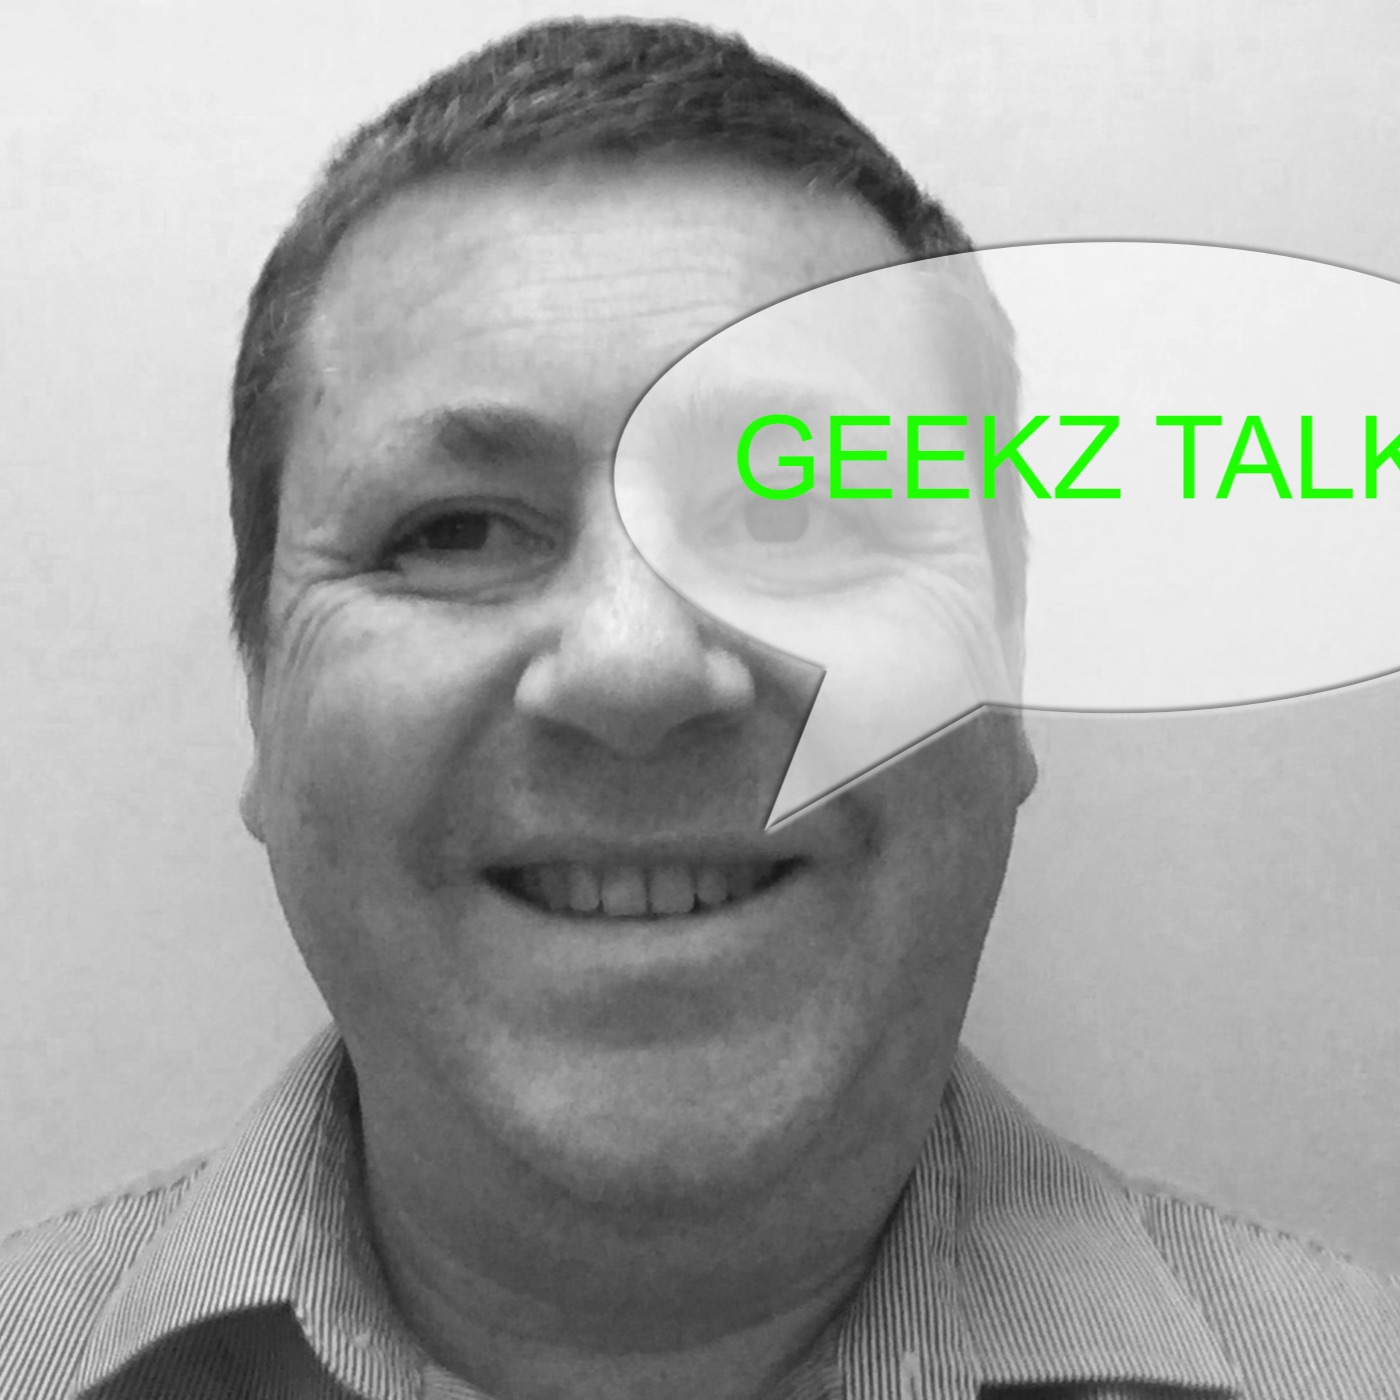 Geekz Talk Podcast | Podcasting & Internet / Online Marketing / Technology / Social Media - Sean McCammon